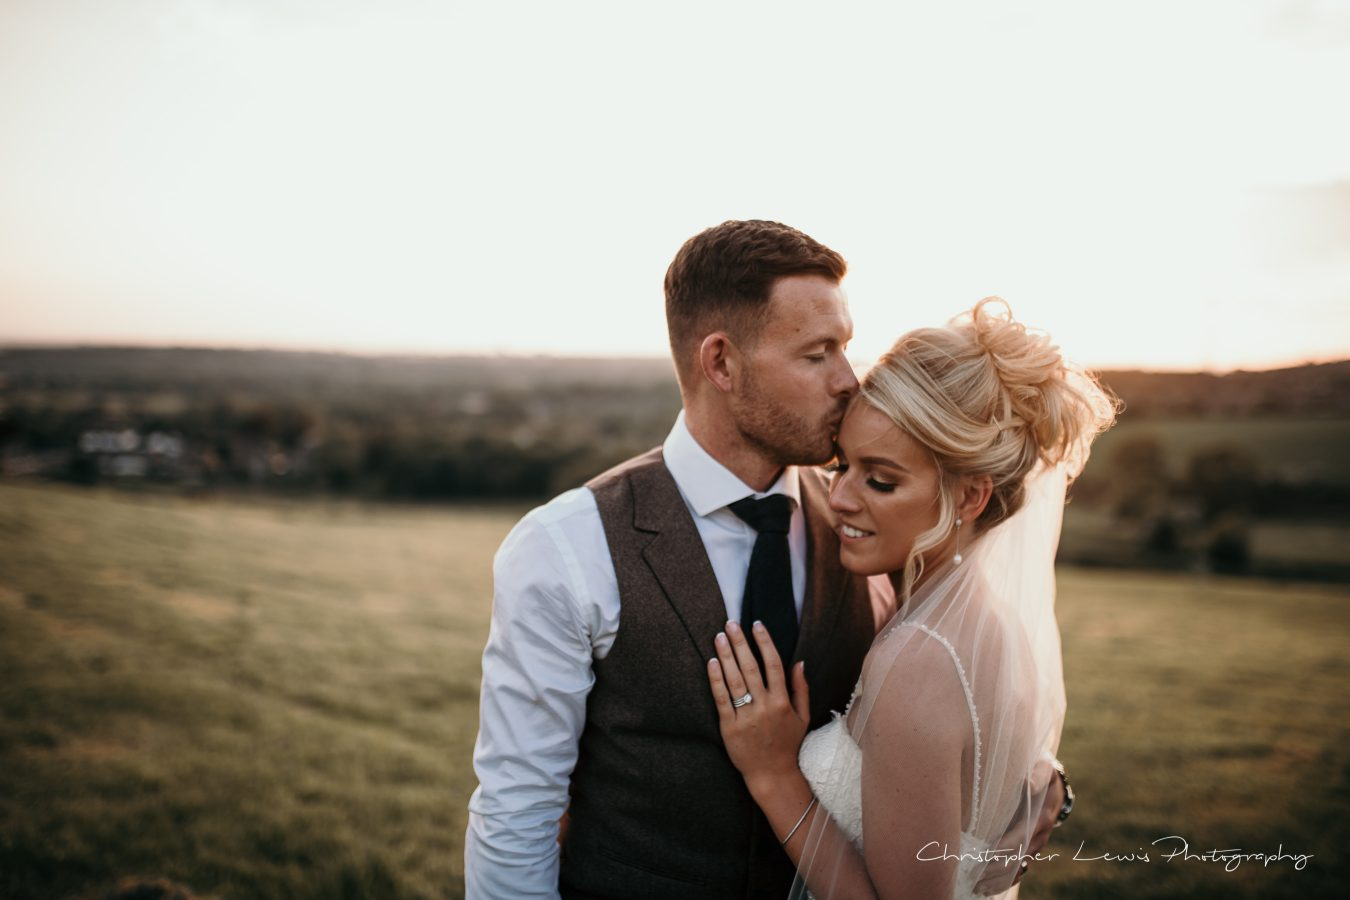 White-Hart-Lydgate-Wedding-Christopher-Lewis-Photography-228